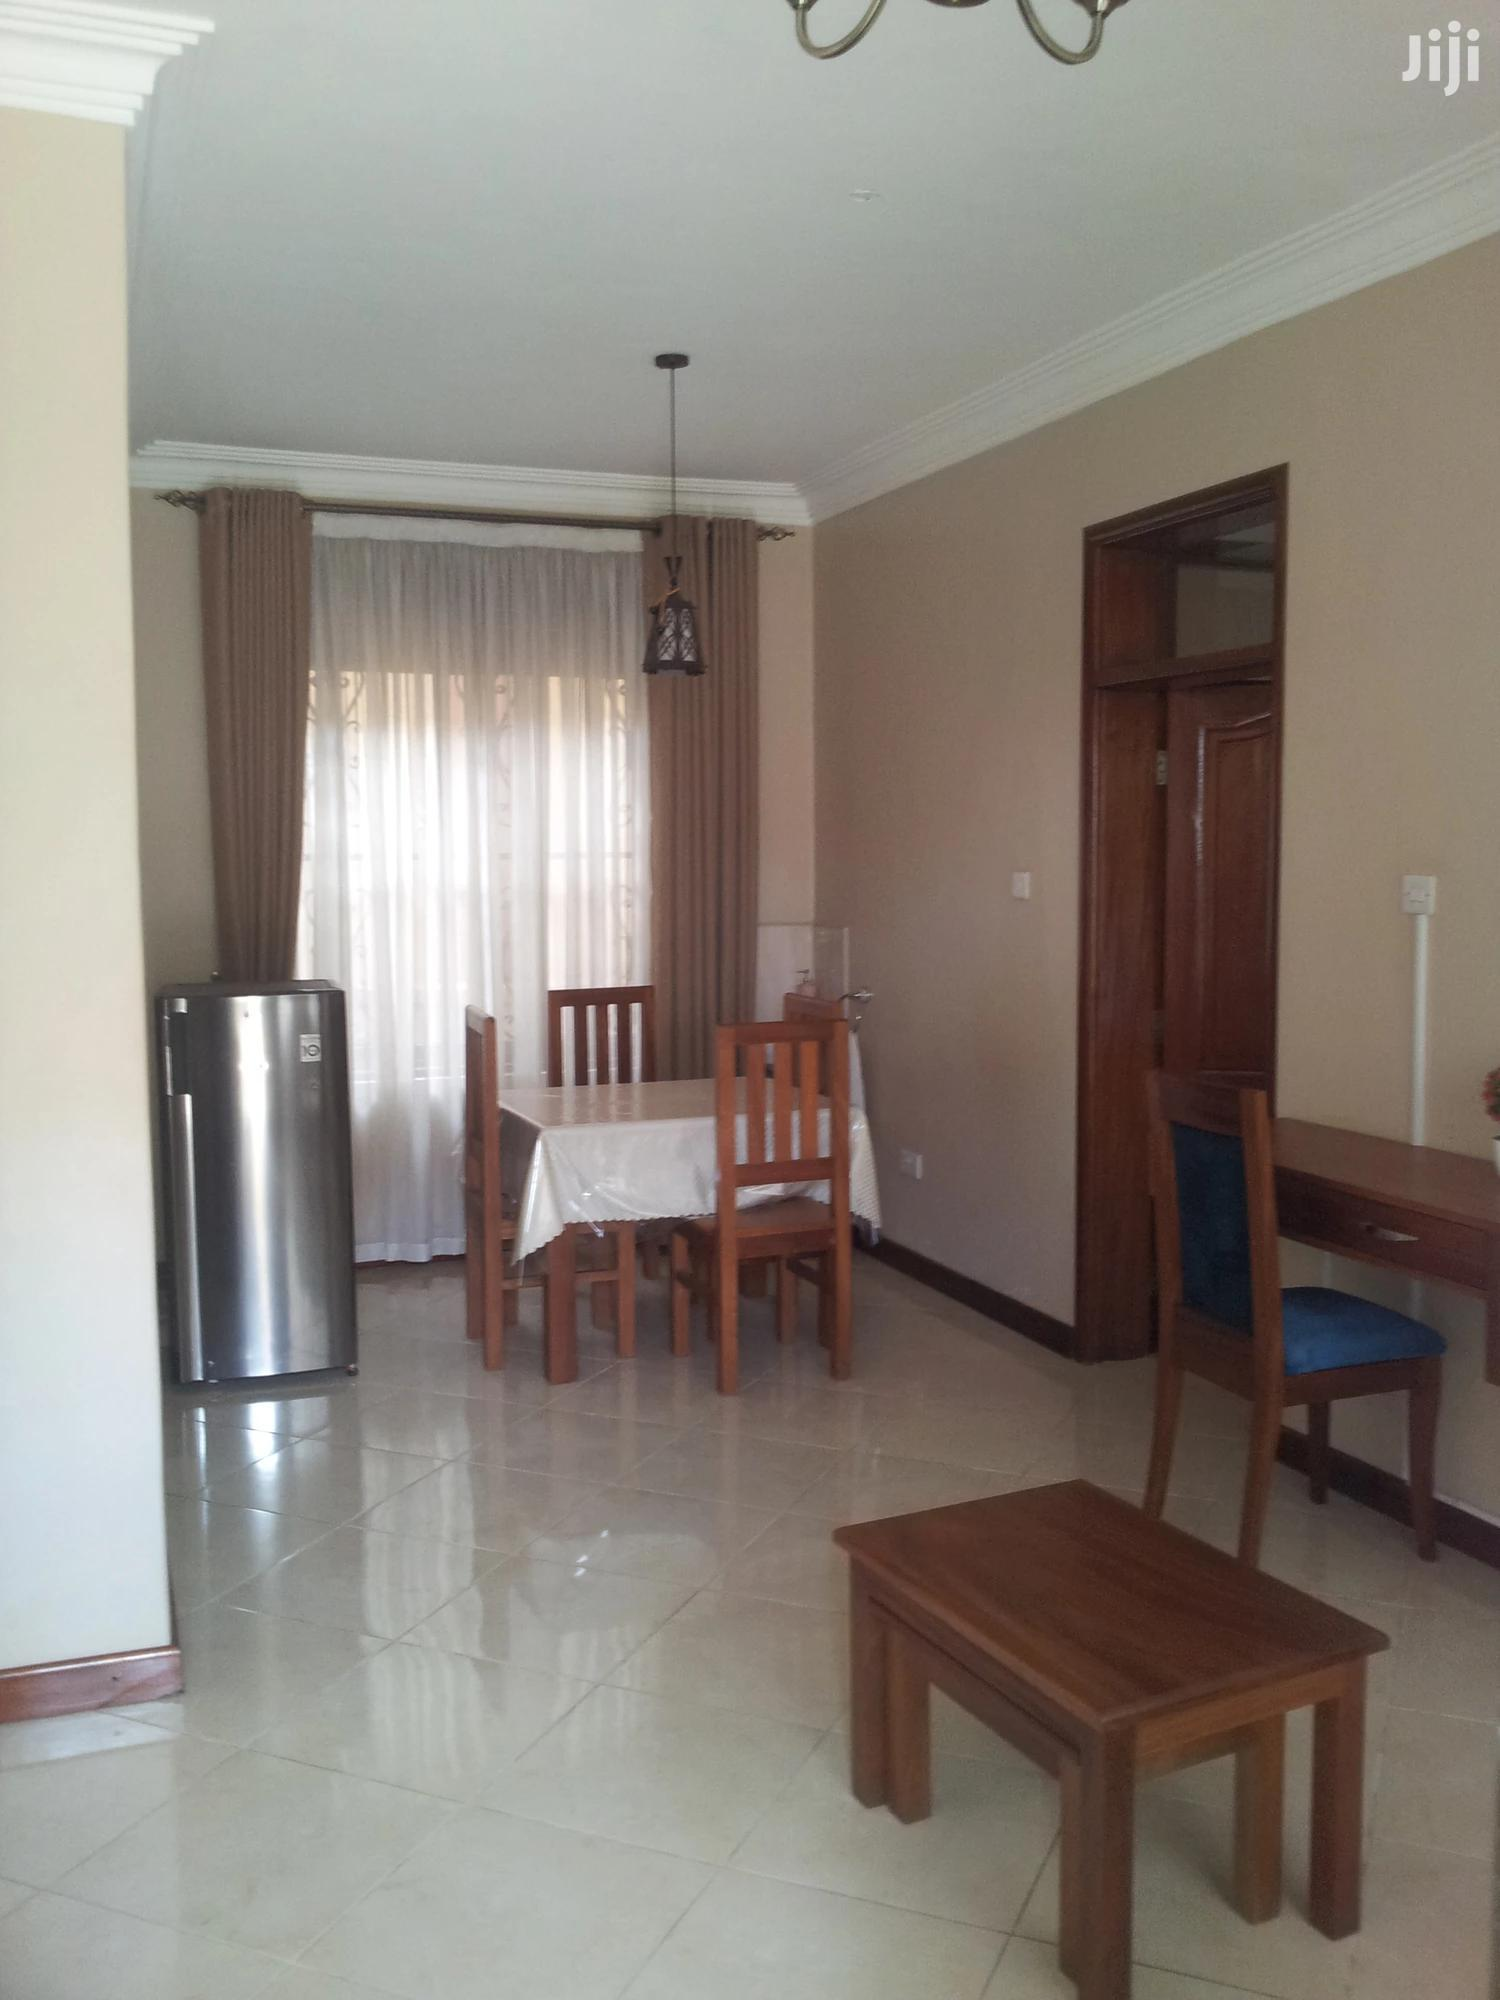 Fully Furnished Apartment For Rent At Bukoto | Houses & Apartments For Rent for sale in Kampala, Central Region, Uganda